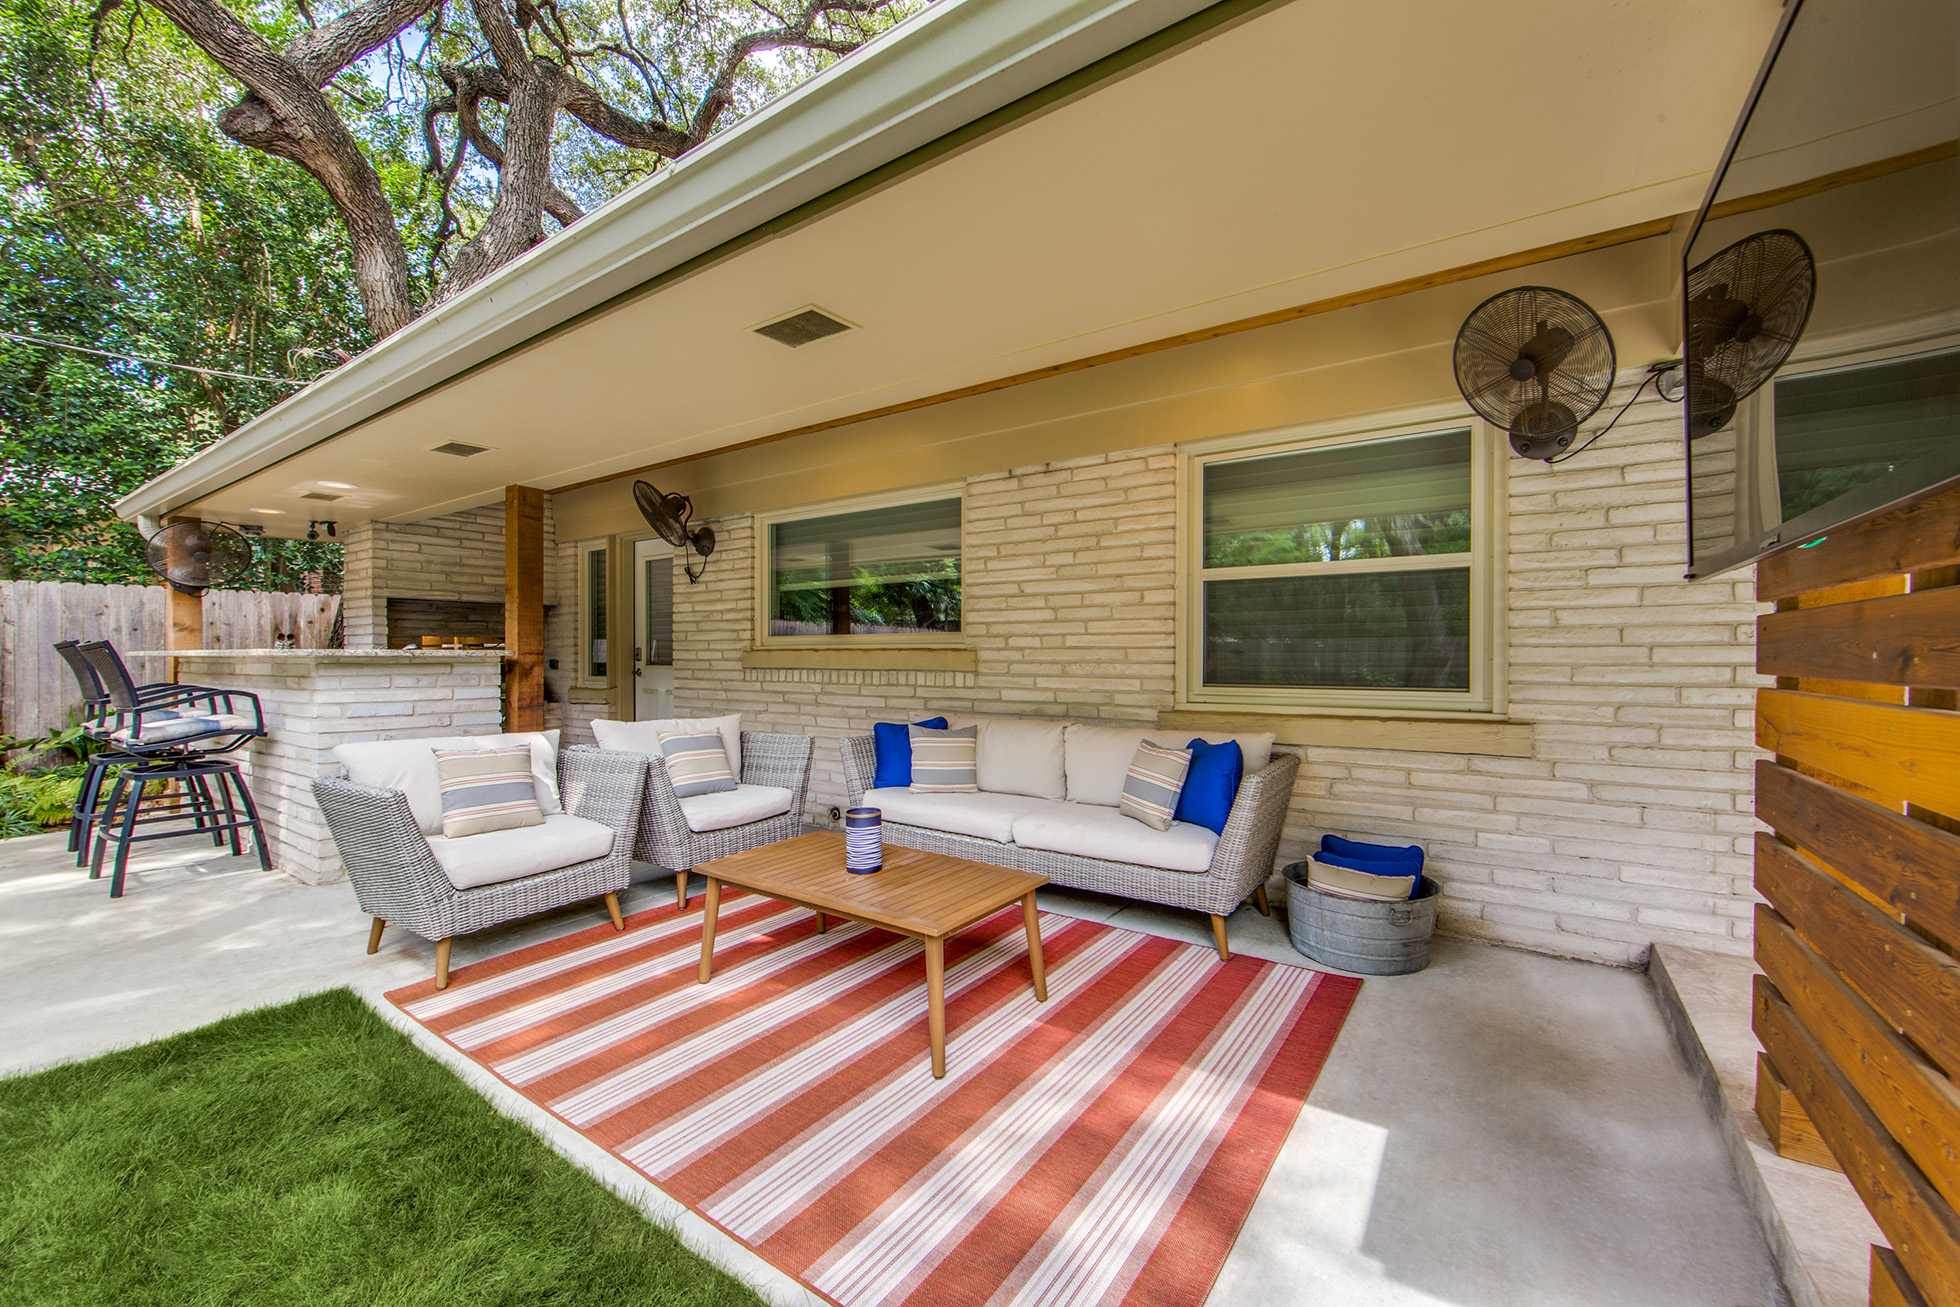 Orange striped carpet and wood table in outdoor living area